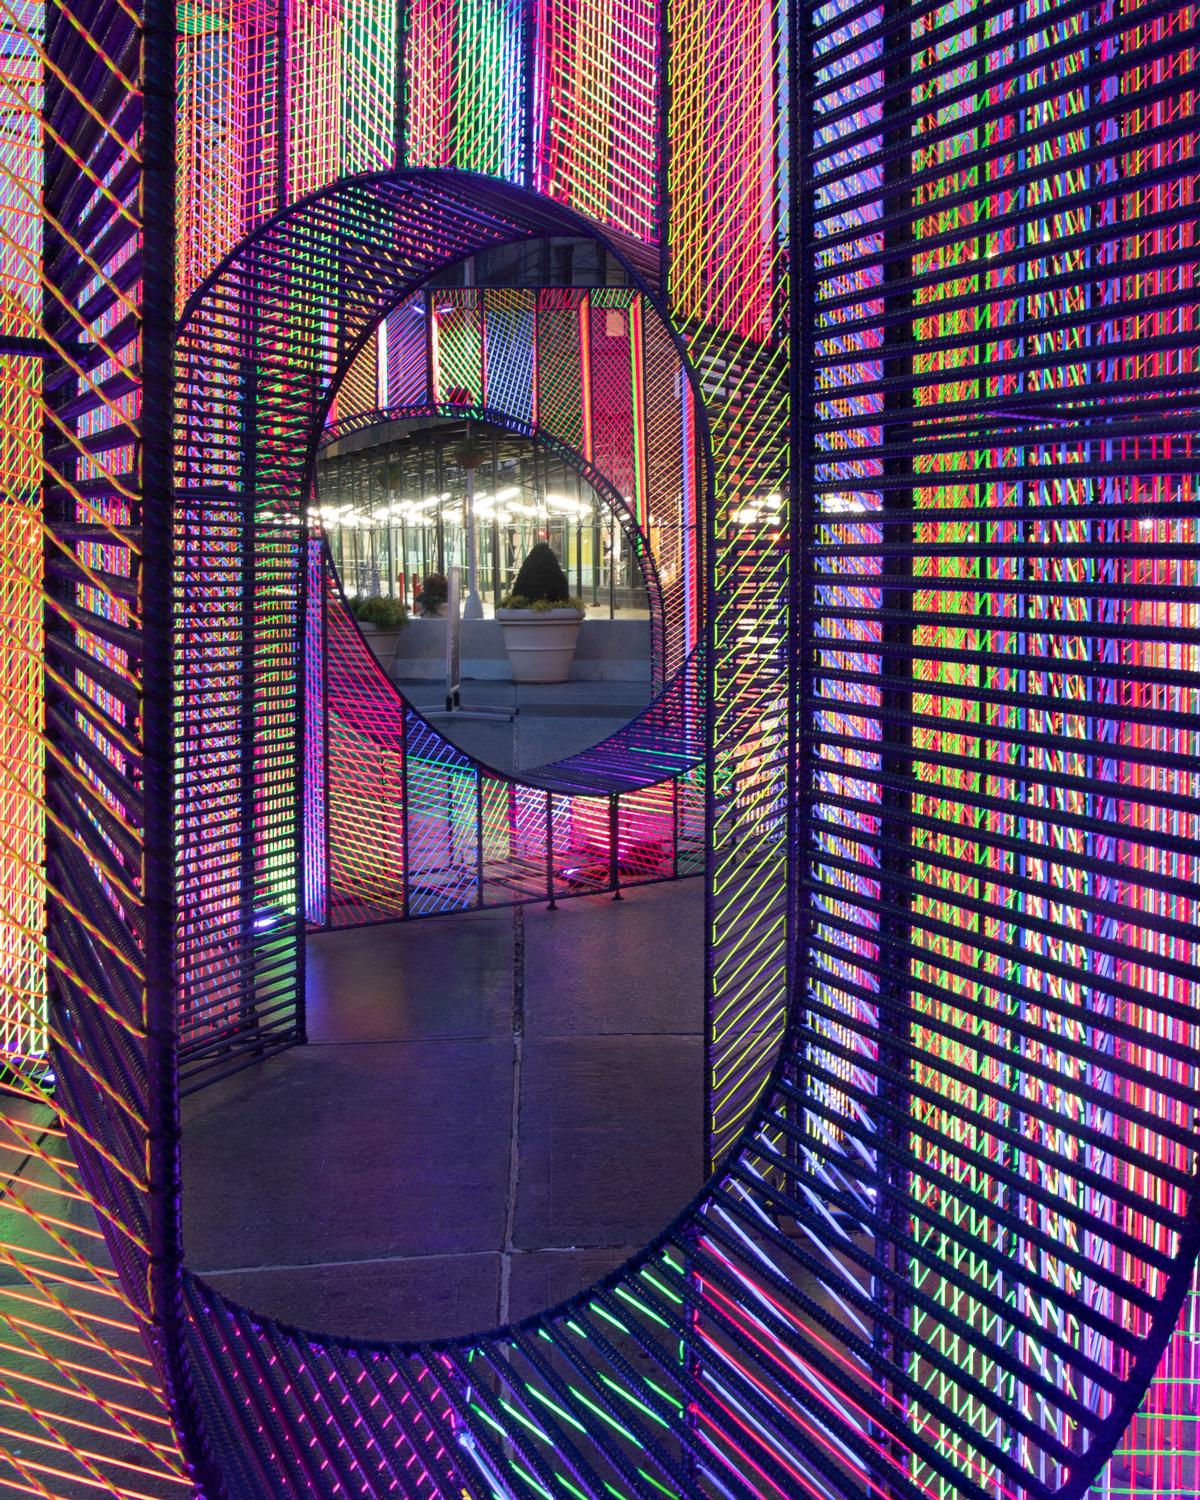 27,000ft (8,200m) of cord was used to create the installation / Hou de Sousa